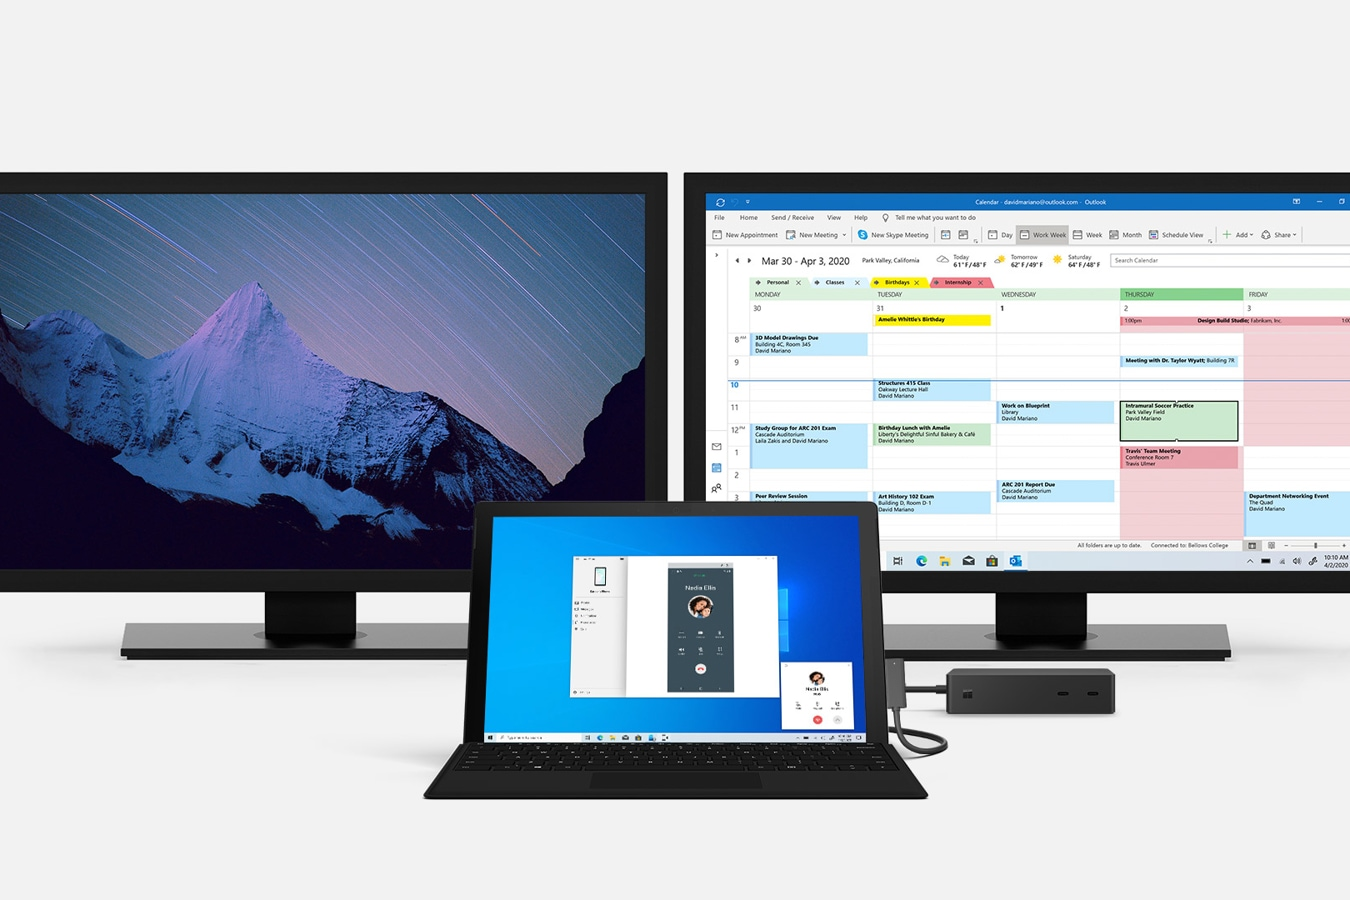 Un computer Surface Pro 7 e Surface Dock 2 connessi a diversi monitor di grandi dimensioni